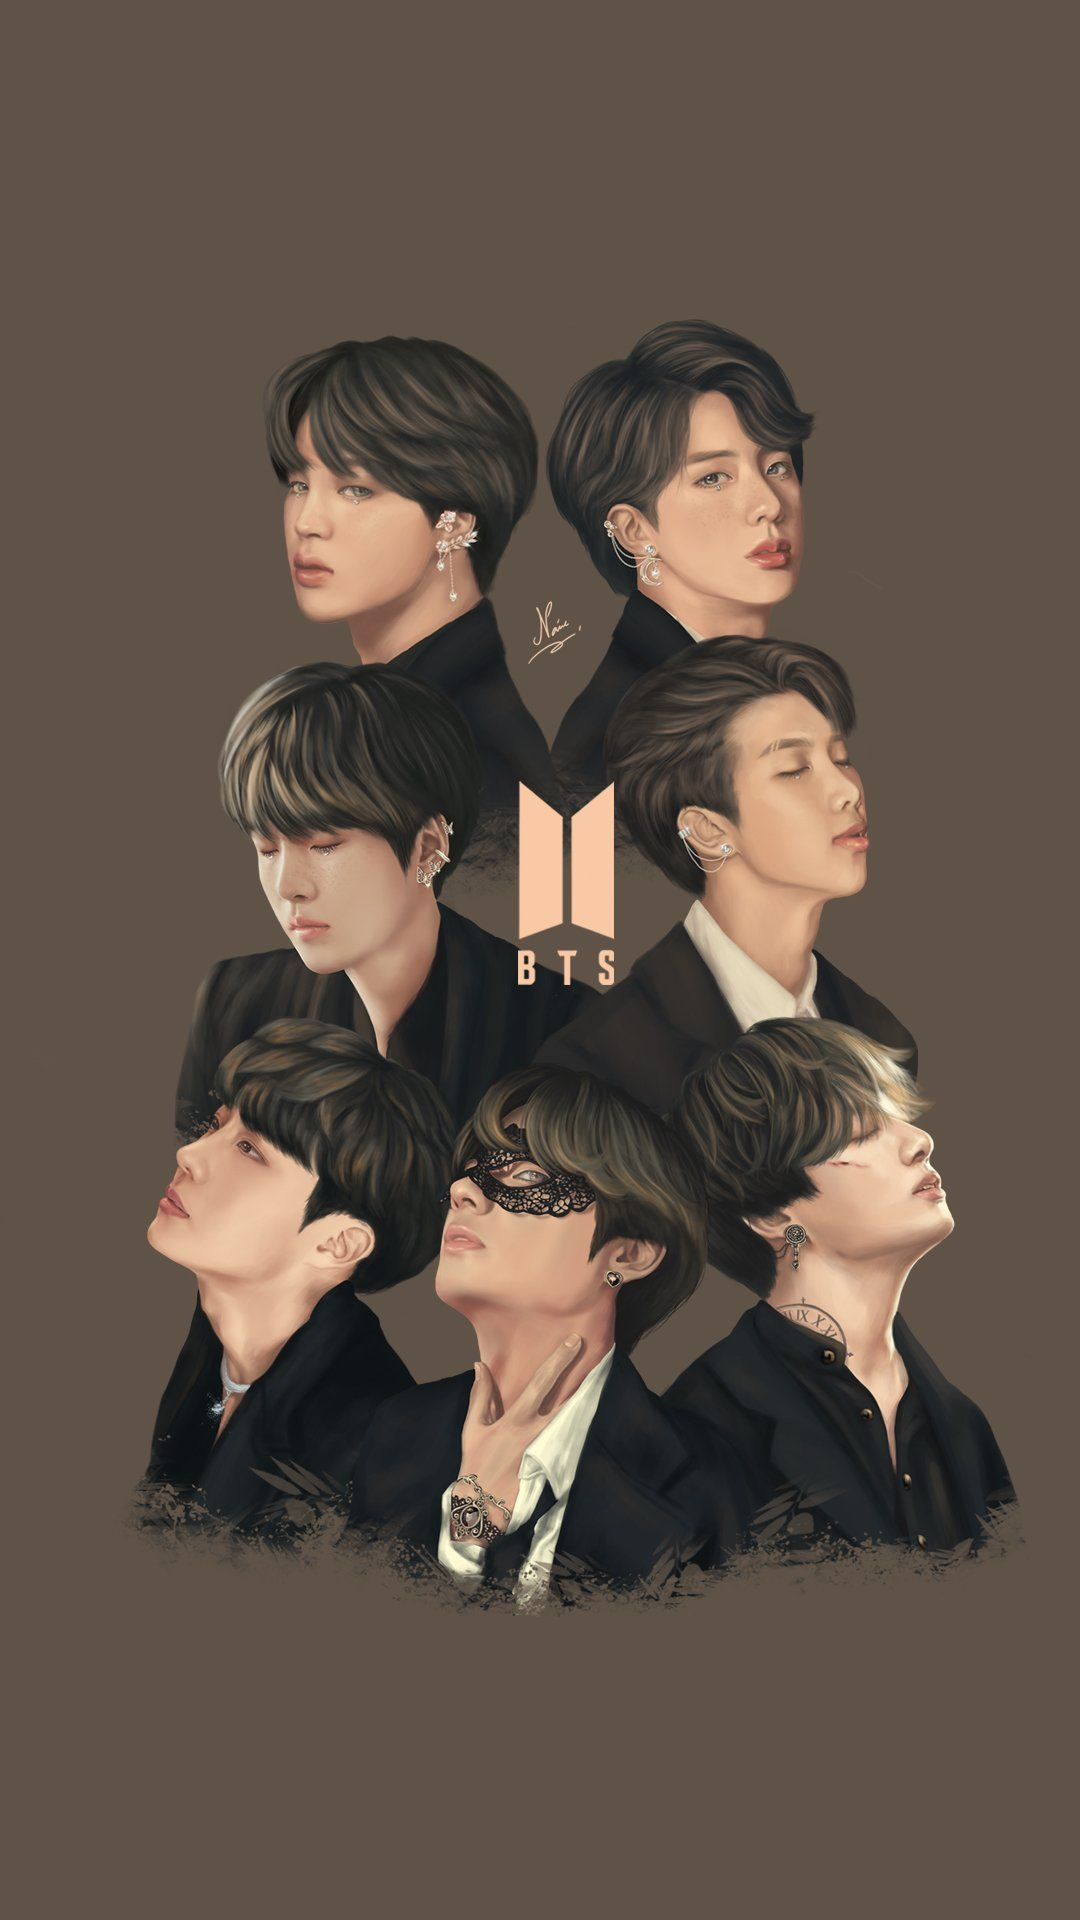 Naice Rest On Twitter In 2021 Bts Wallpaper Bts Beautiful Bts Group Picture Bts wallpaper hd whatsapp